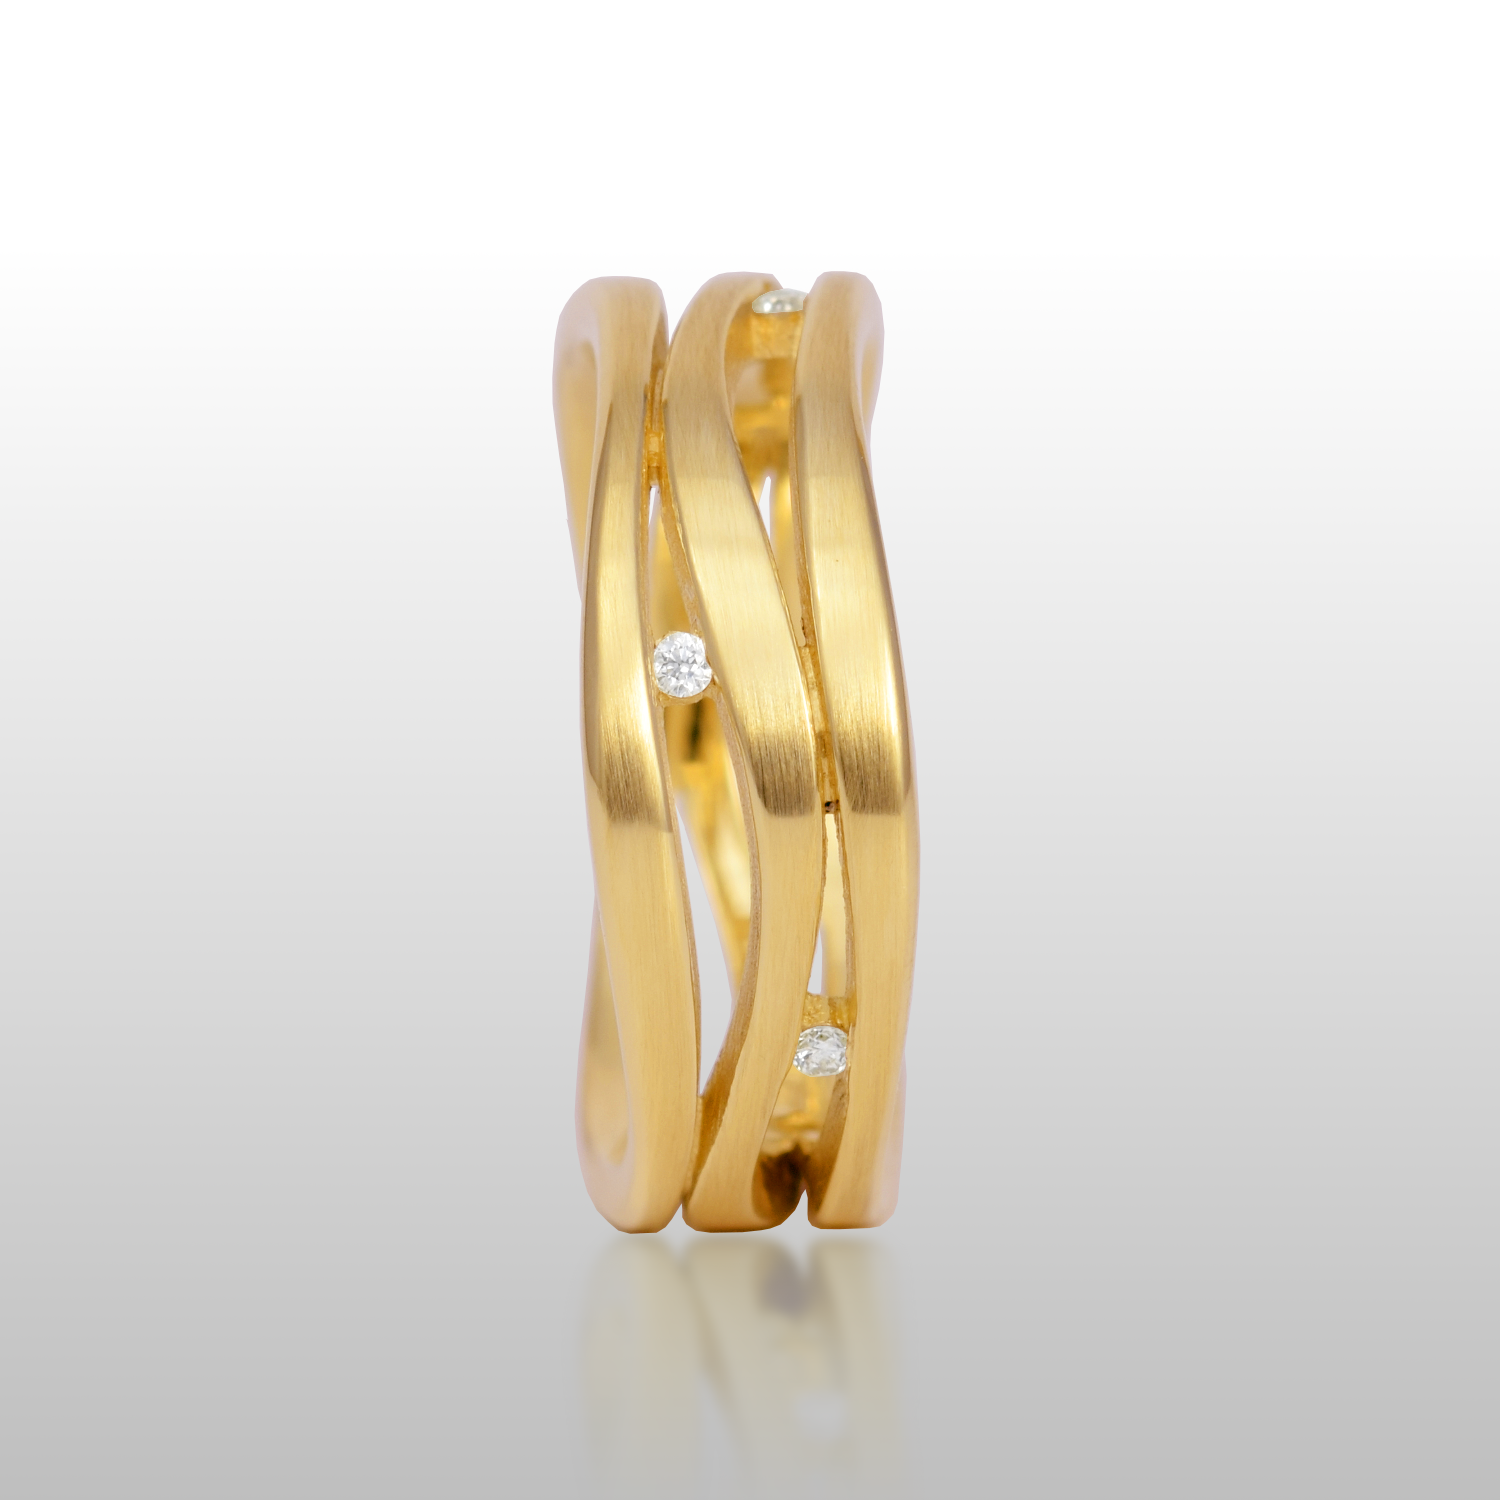 Wave Ring in 18k Gold or Platinum 'Lamello 3' by Pratima Design Fine Art Jewelry